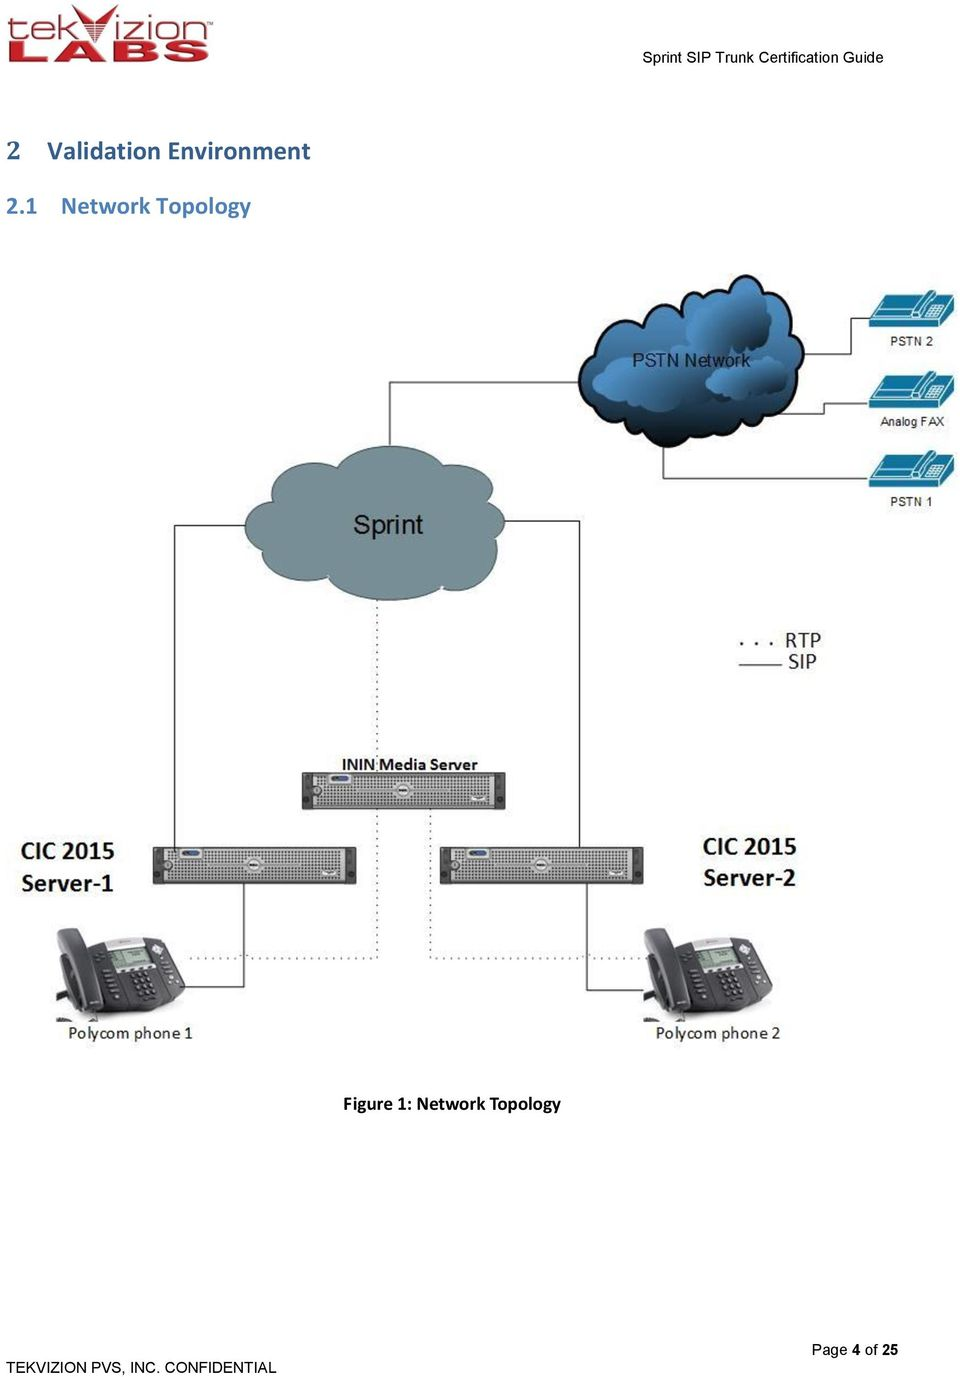 1 Network Topology